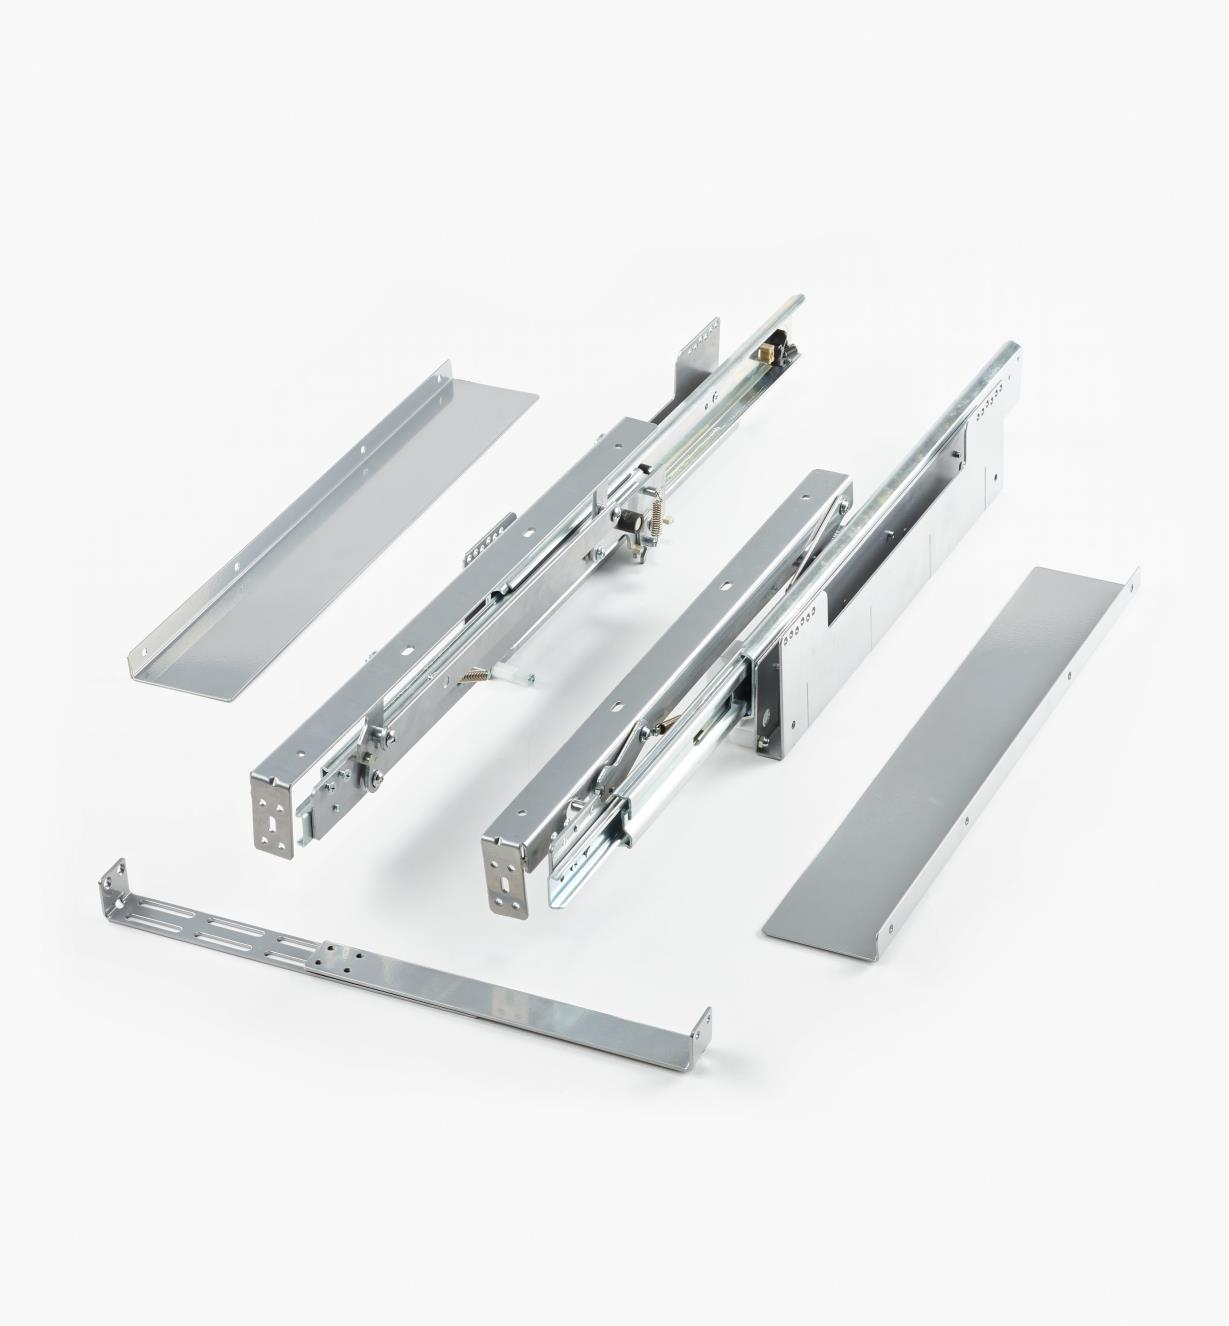 12K1640 - Worktop Extension Slides, pair